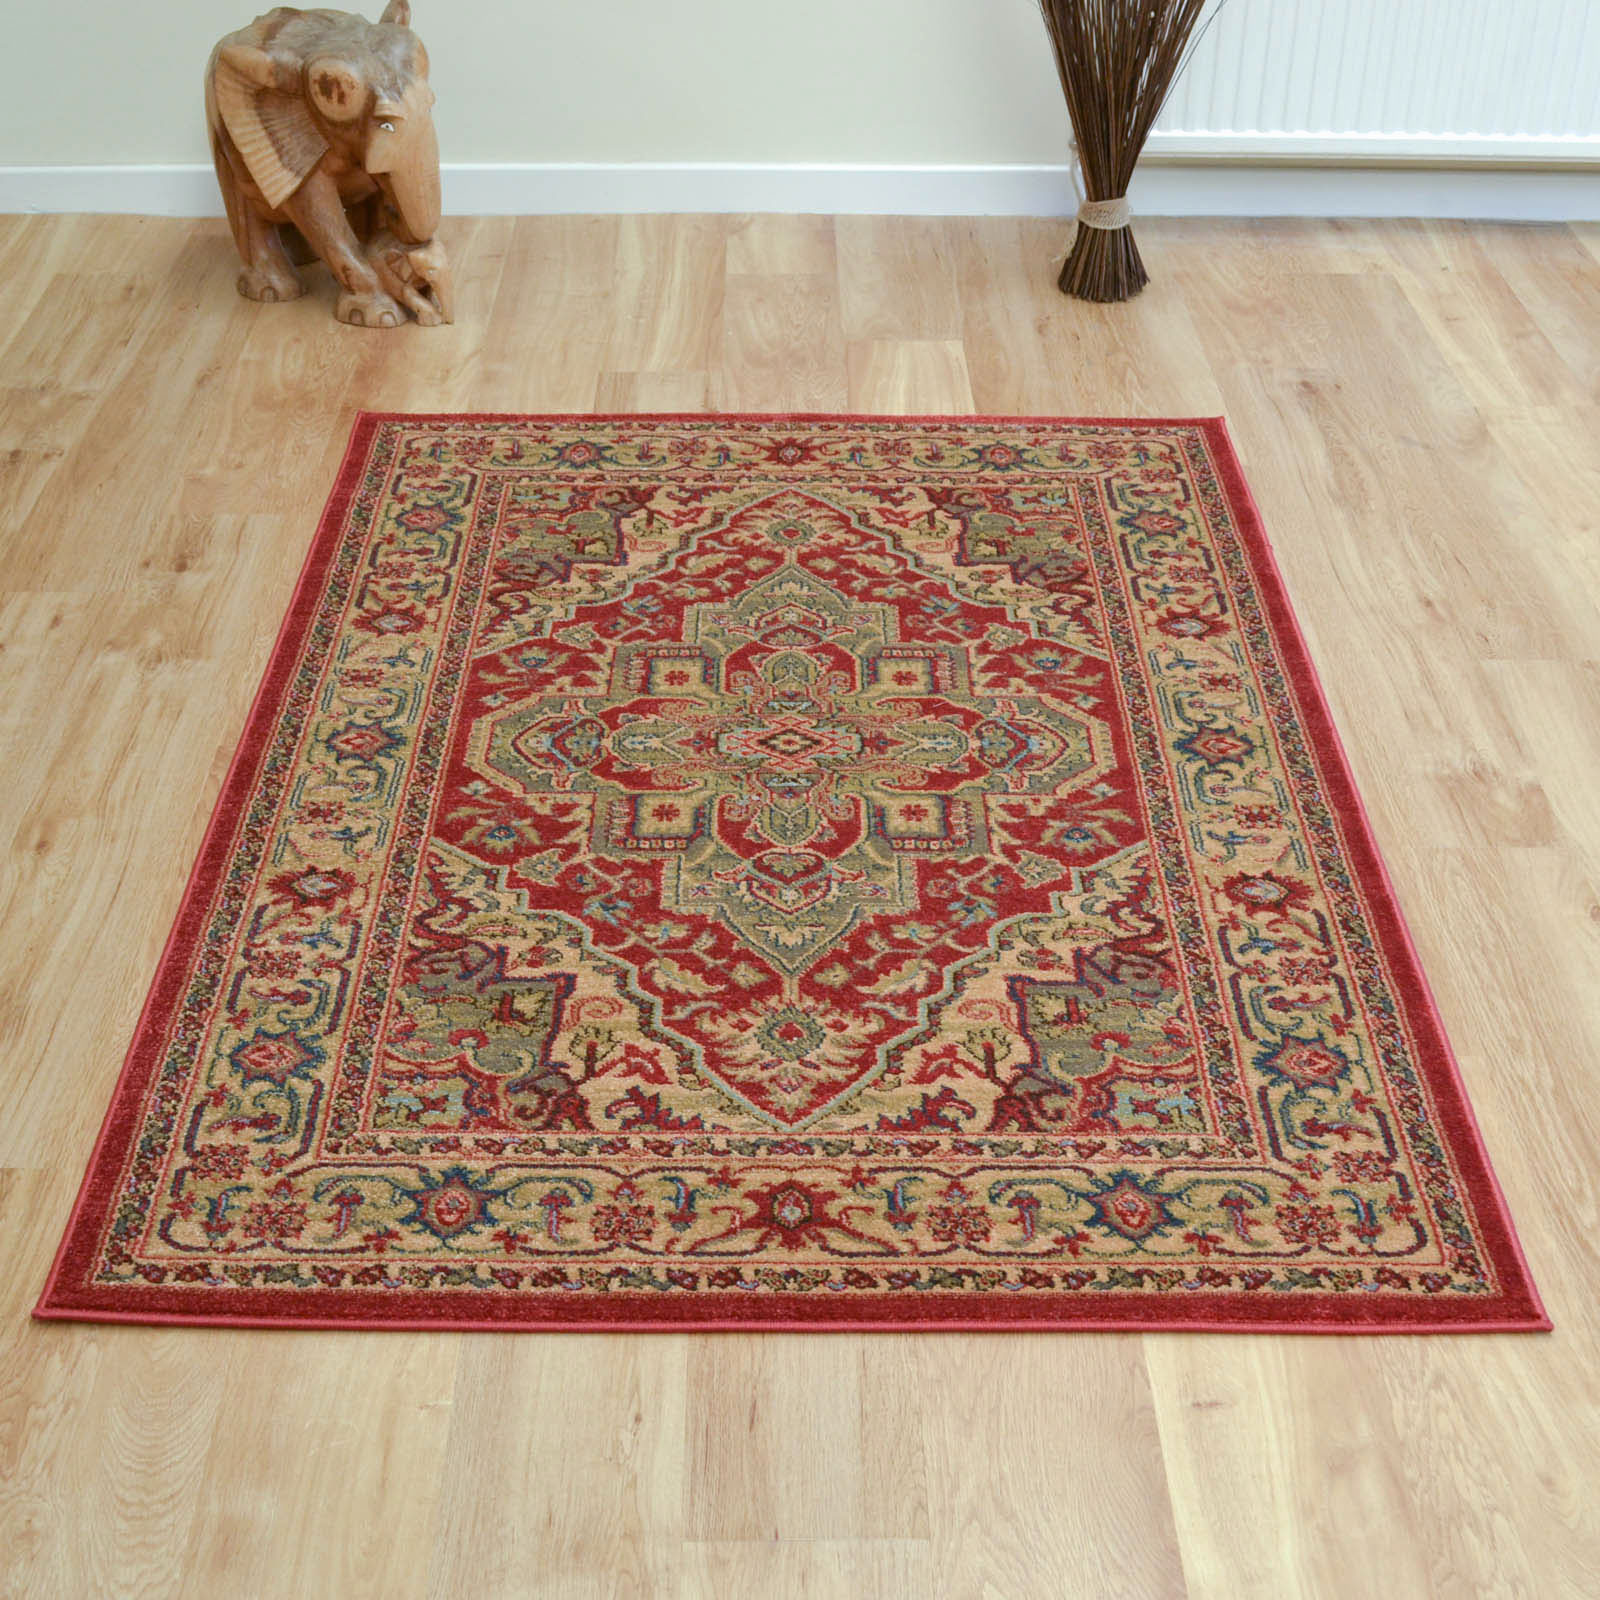 Ziegler Rugs 8788 in Red